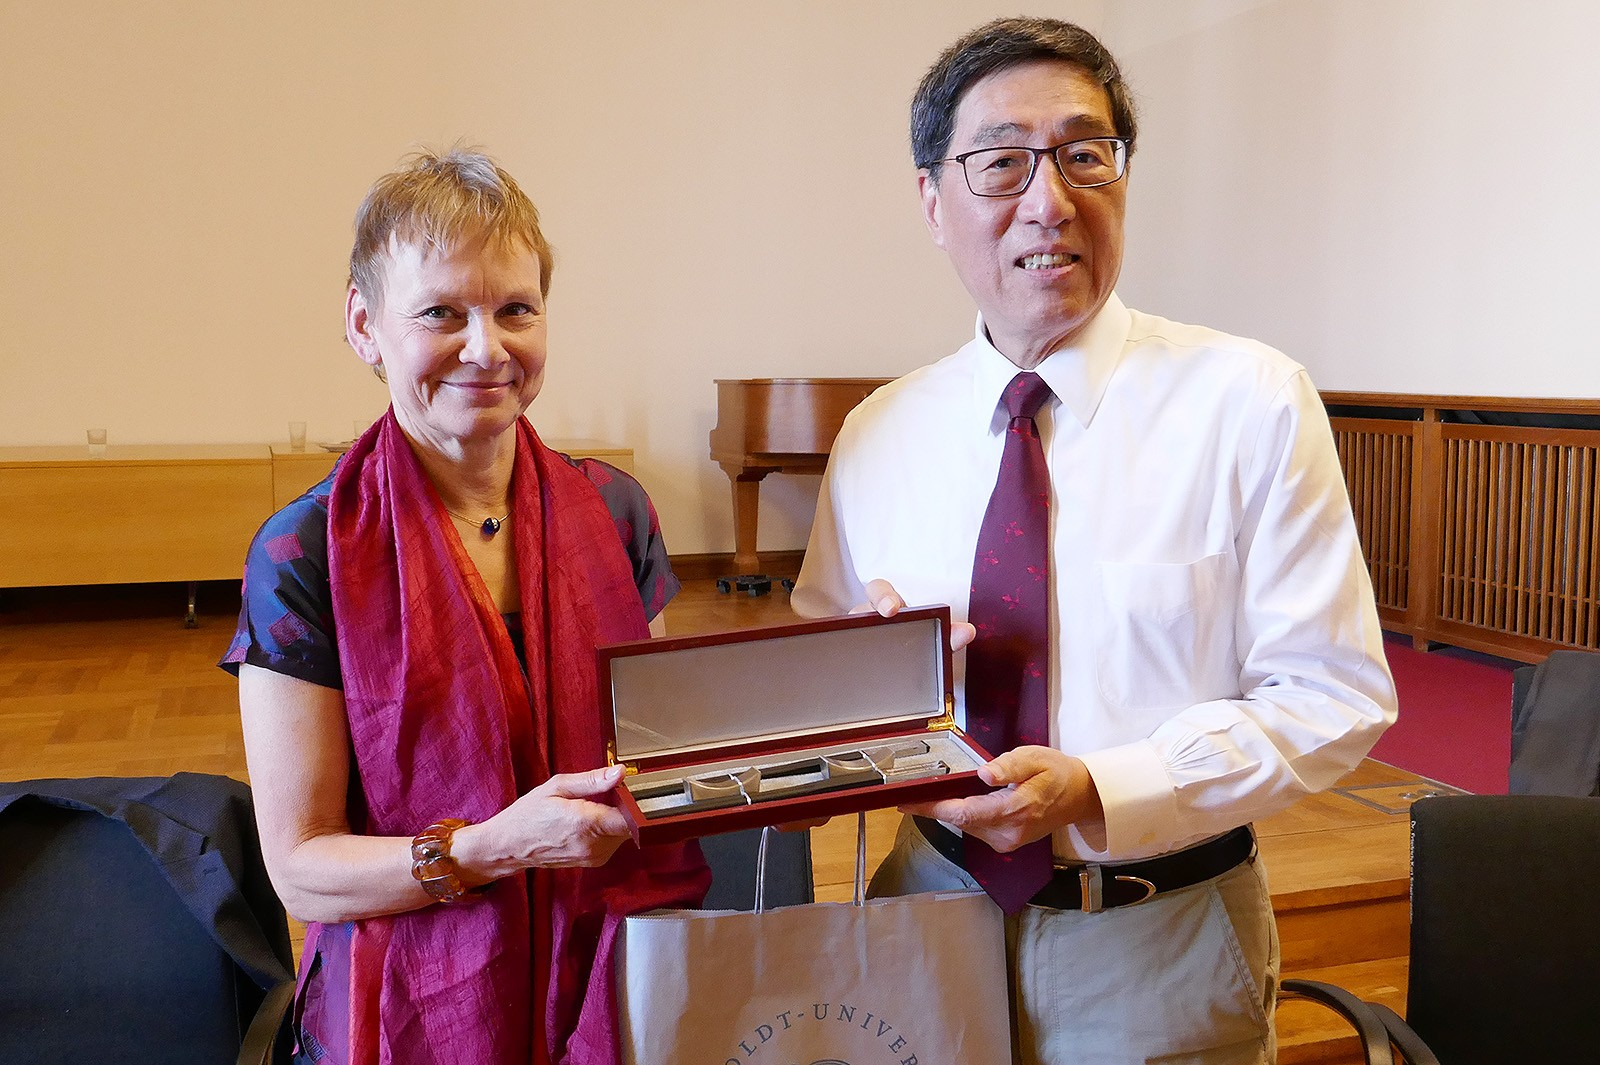 President Kuo (right) and Professor Kunst exchange souvenirs at HU Berlin.